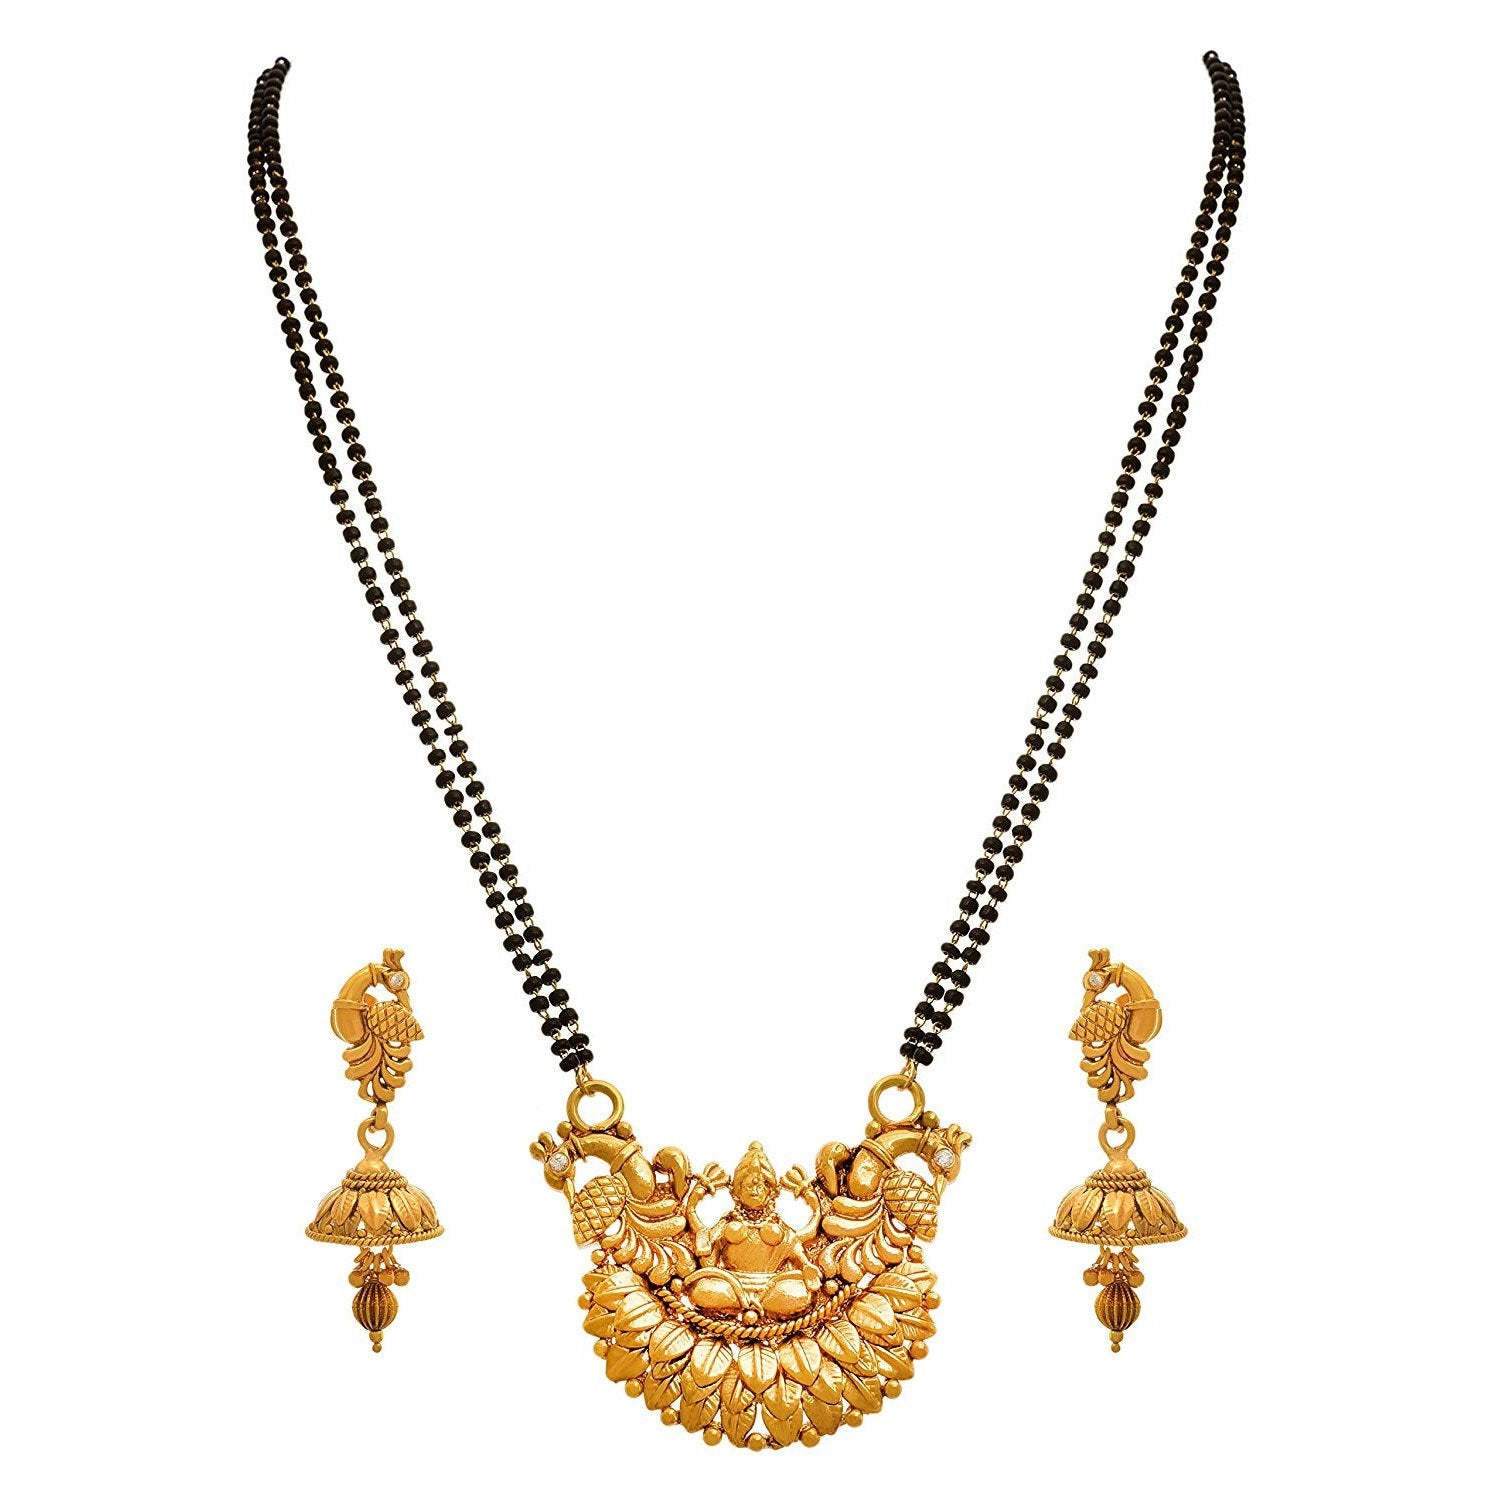 JFL - Traditional Ethnic One Gram Gold Plated Peacock Designer Mangalsutra Jewellery Mangalsutra Set with Earring for Women